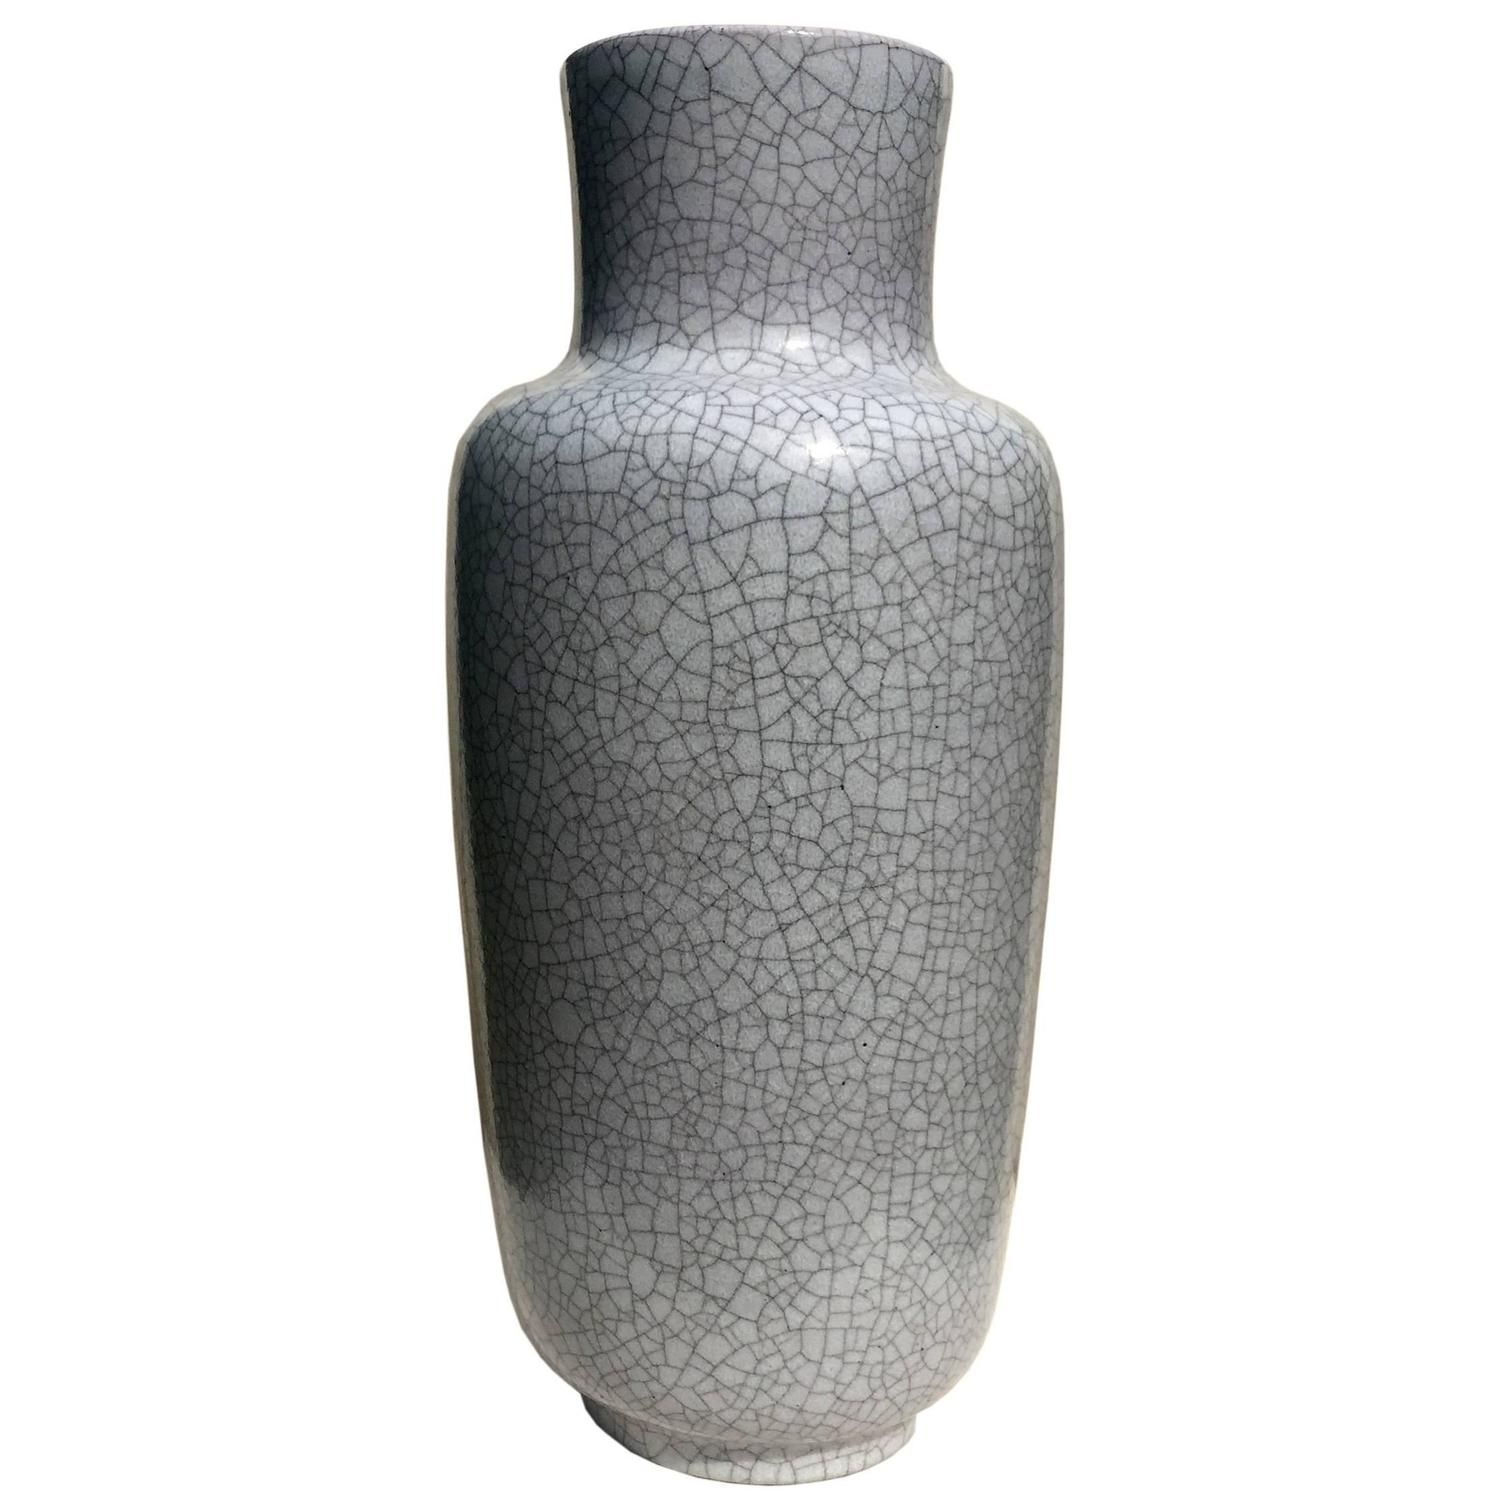 Floor Vase in Gray Crackled Glaze by Glatzle for Karlsruhe